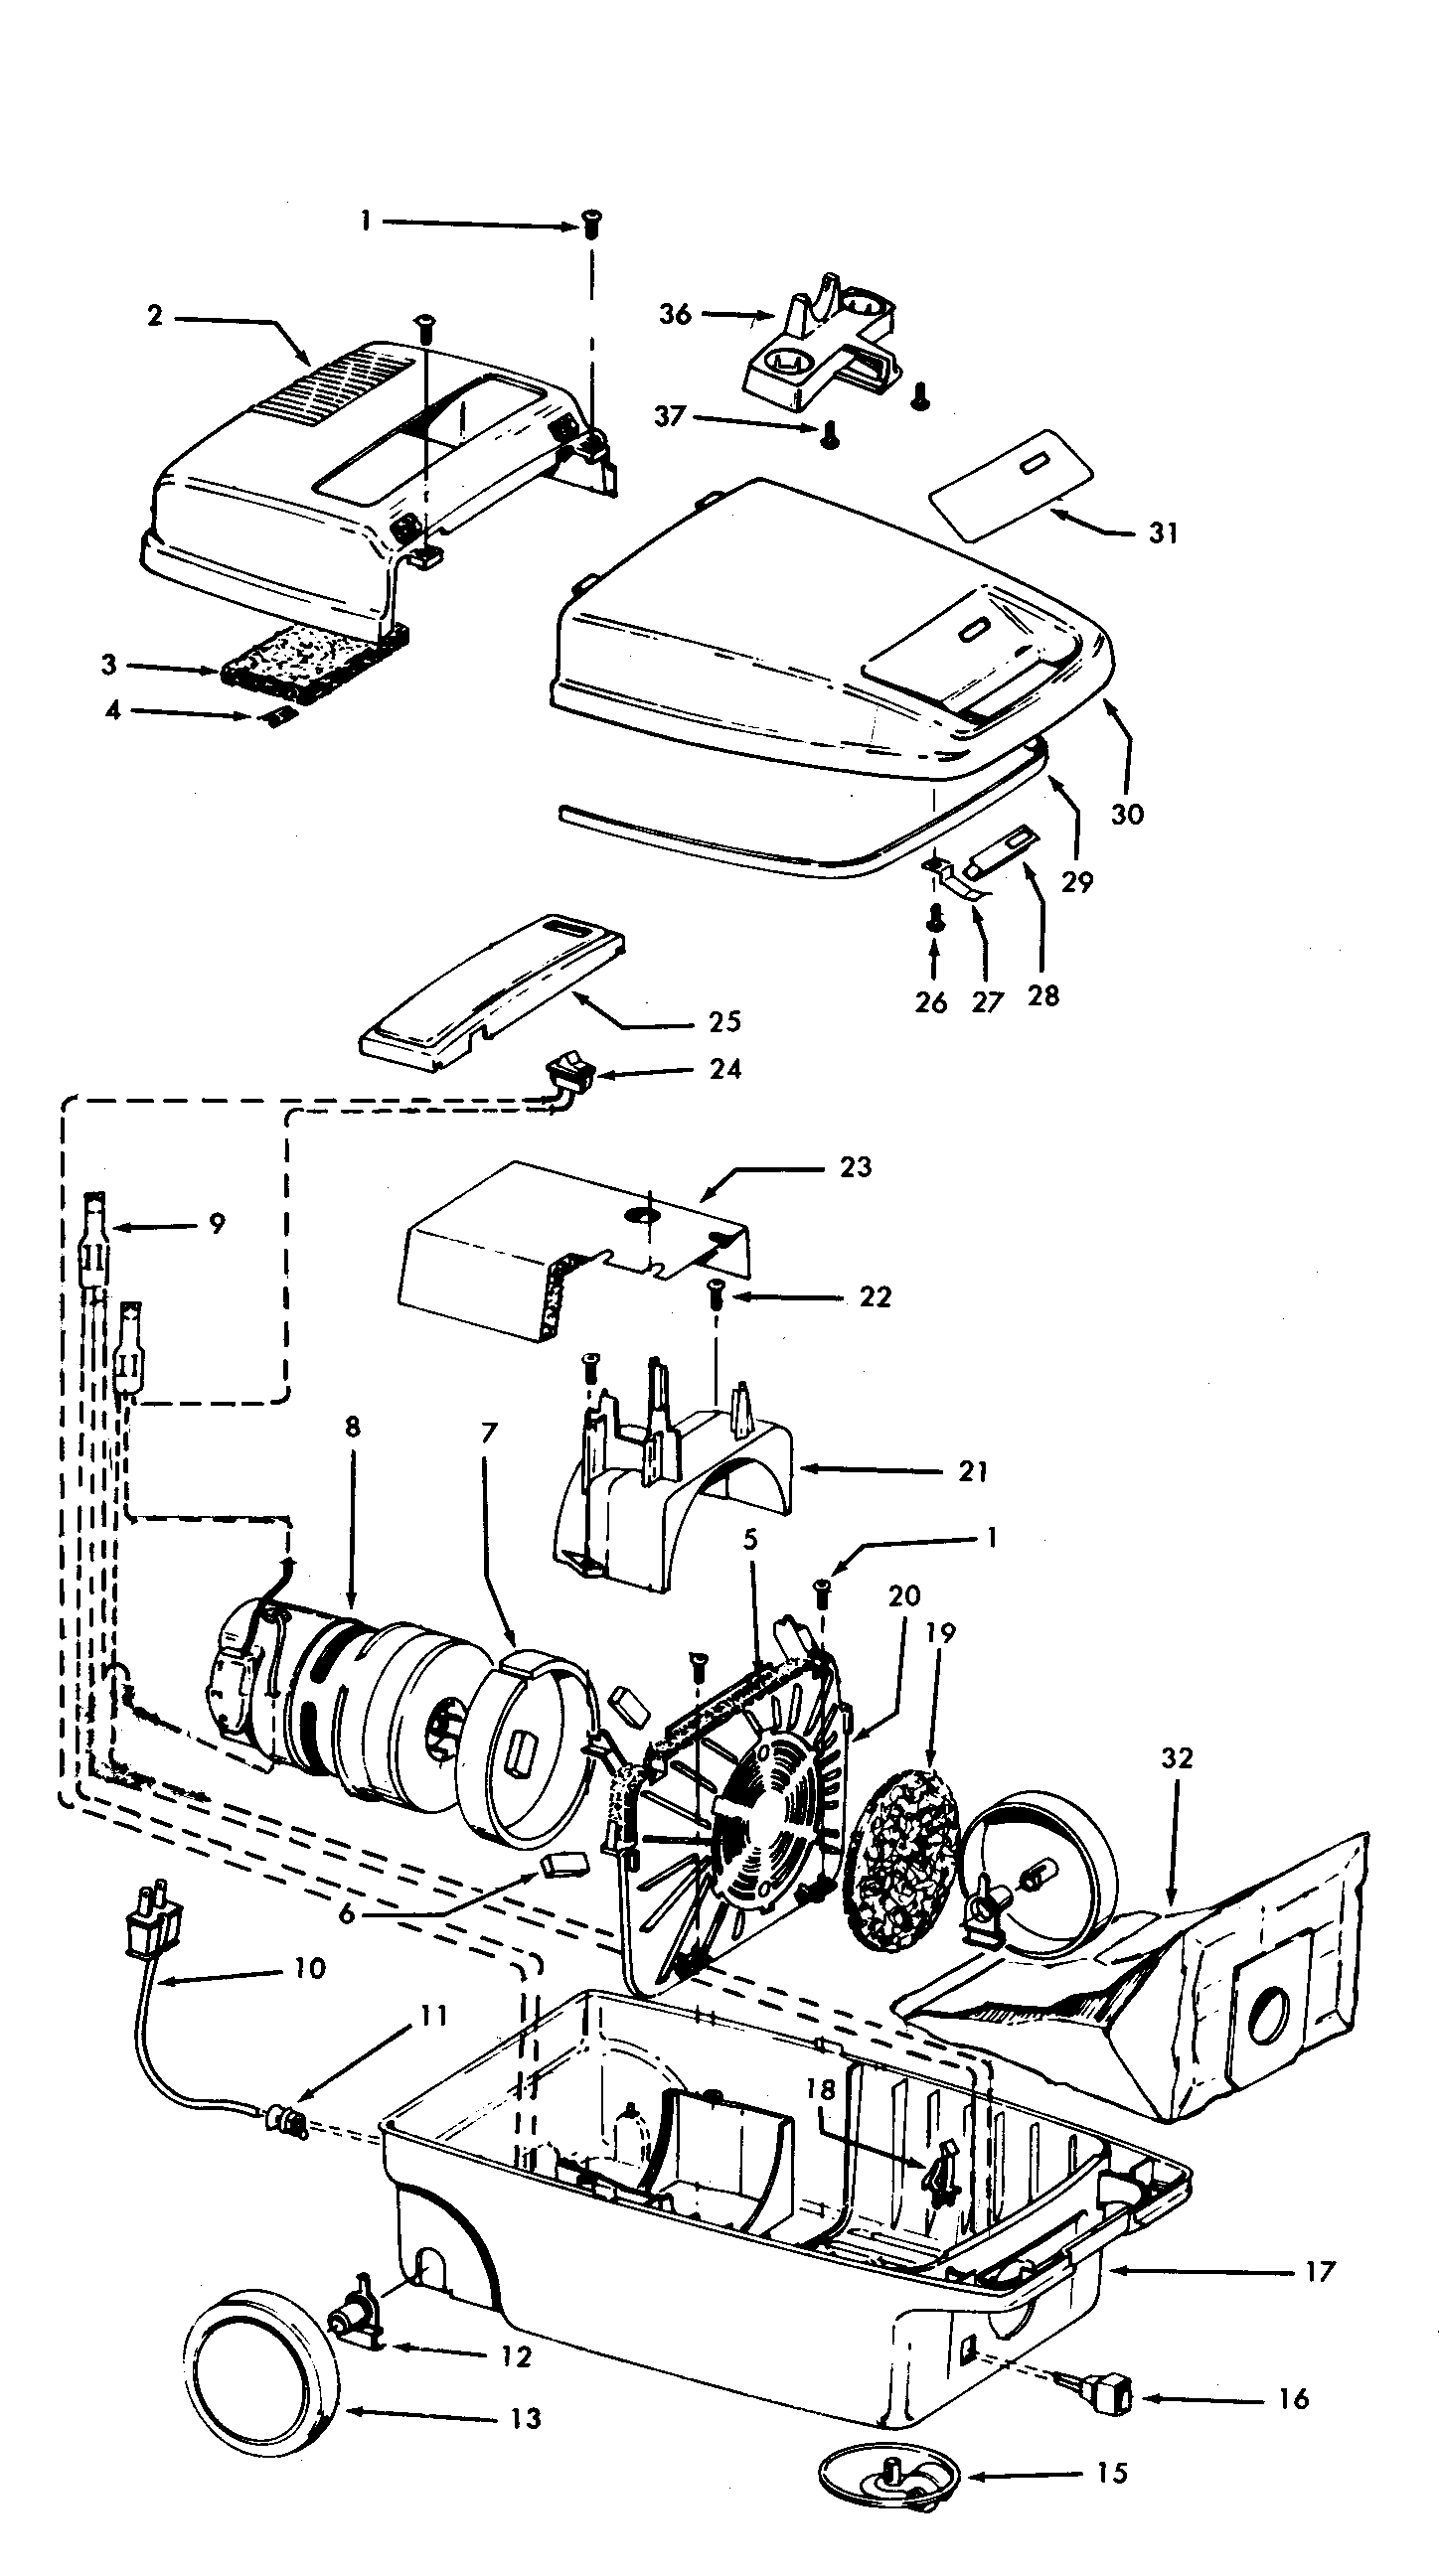 Hoover S3261--- mainhousing diagram